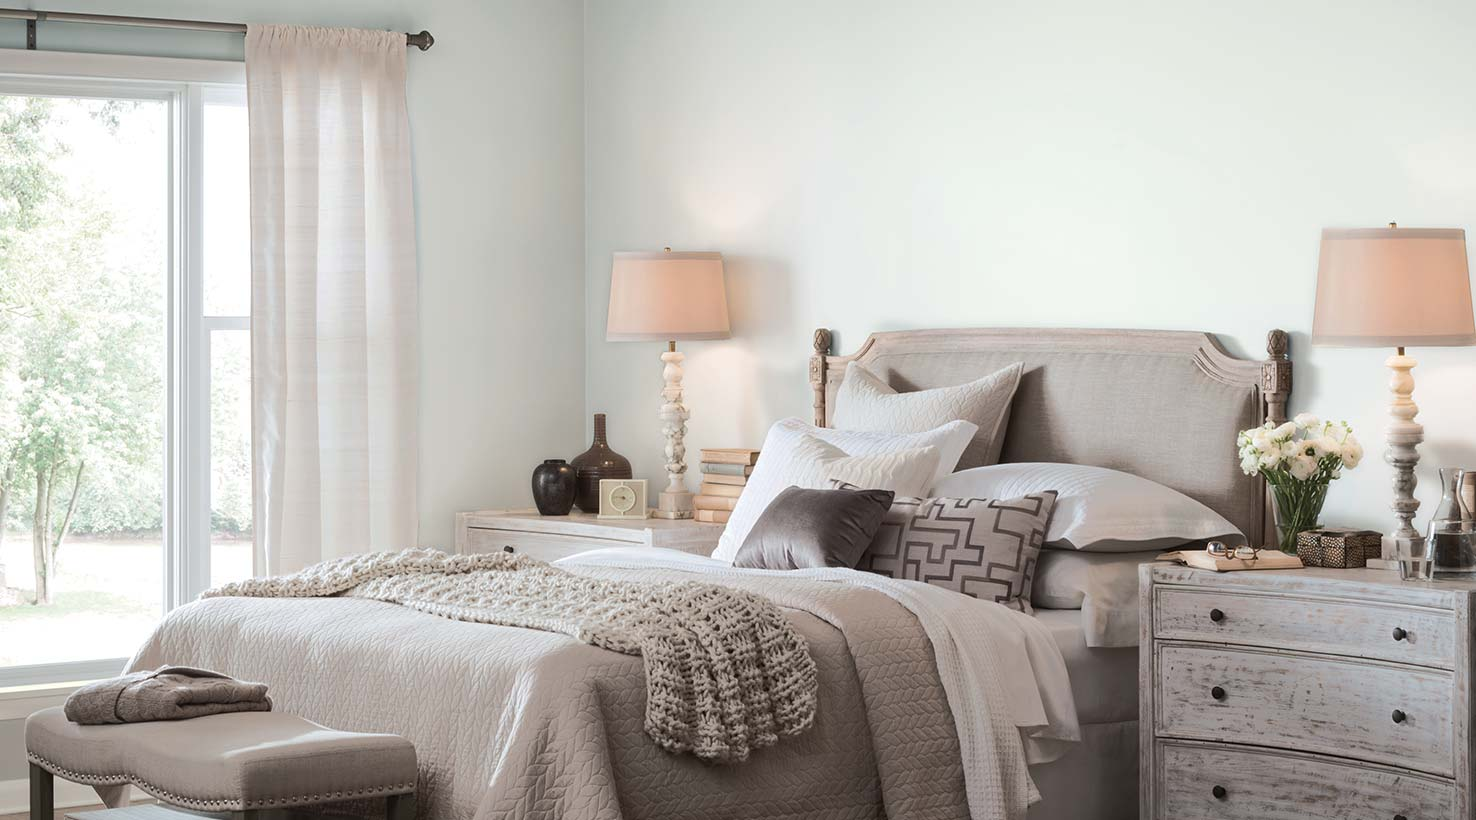 Bedroom Color Inspiration Gallery - Sherwin-Williams